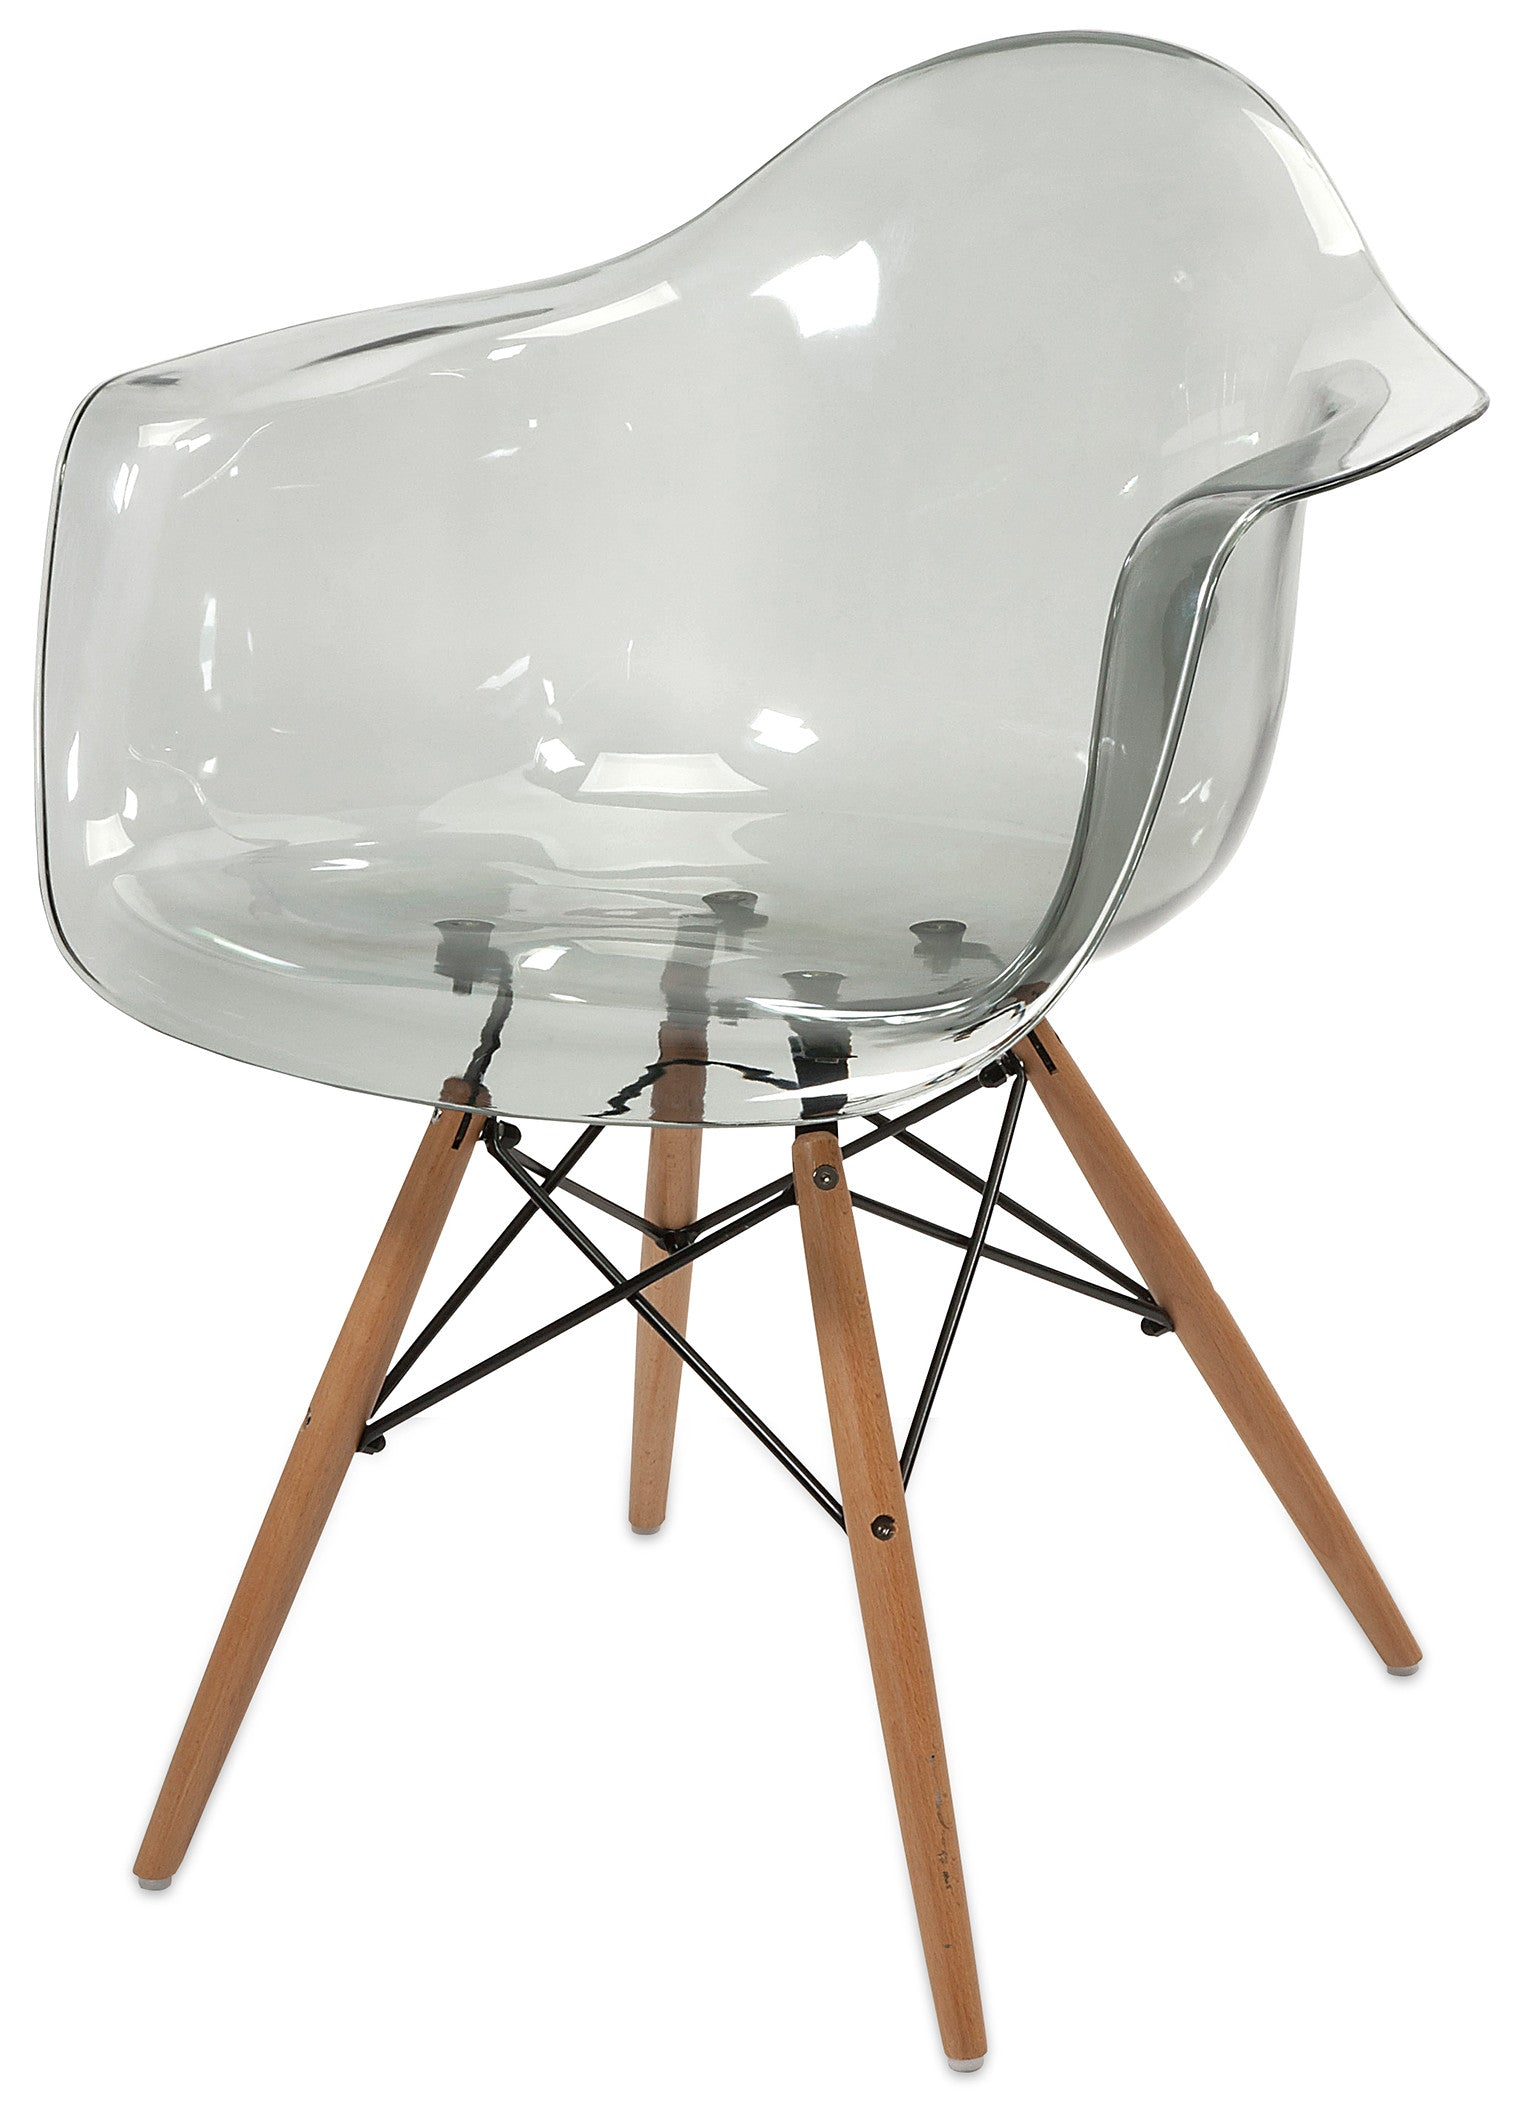 Clear Transparent Mid Century Modern Retro Wood Leg Chairs Set